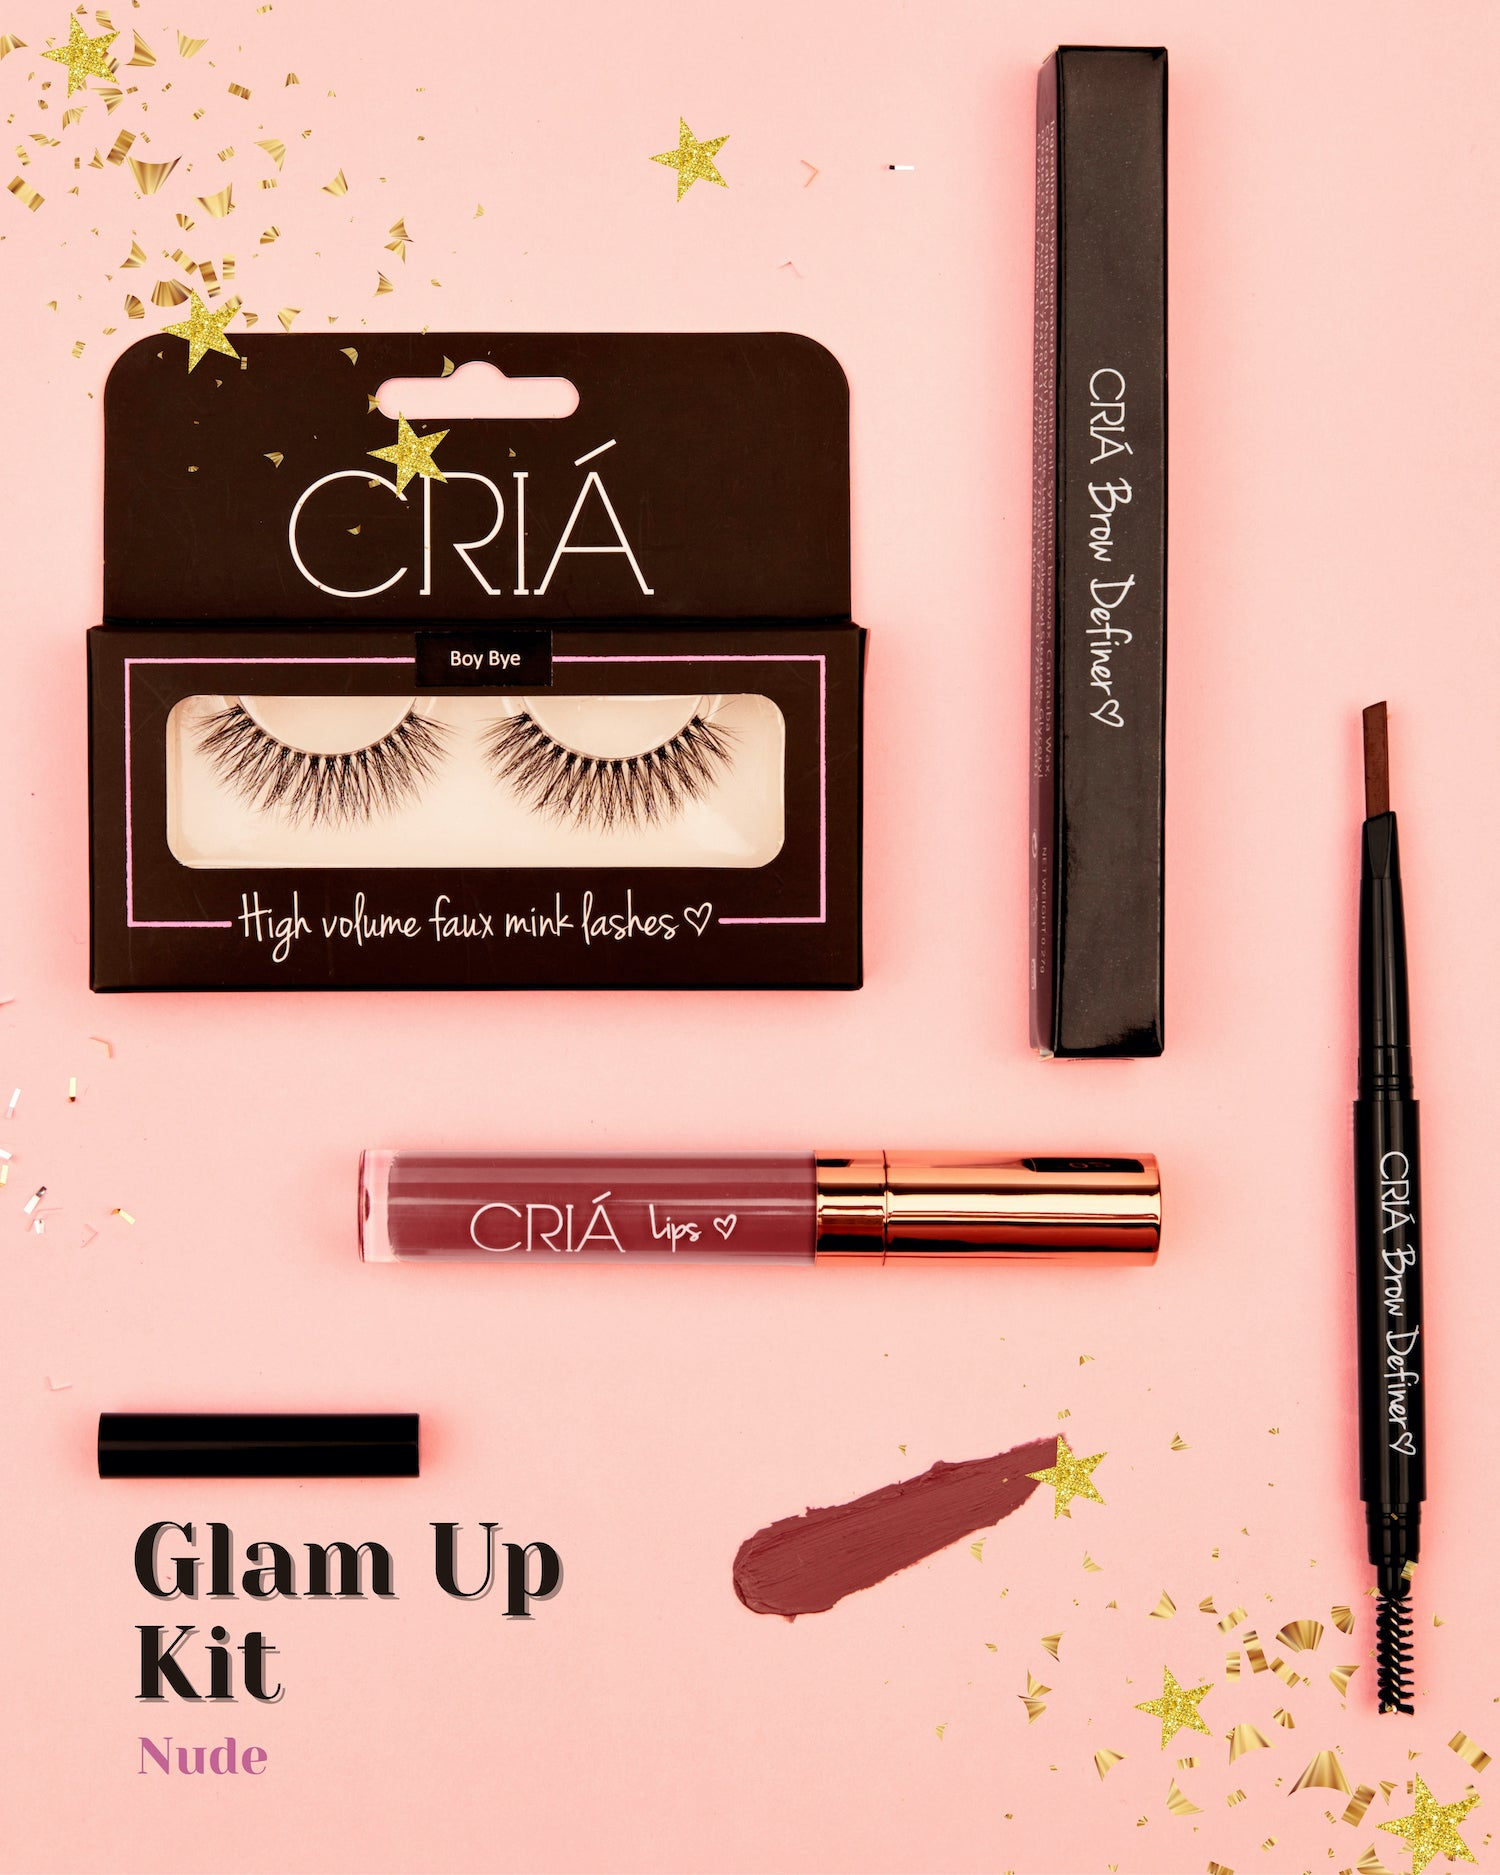 Glam Up Kit (Nude)